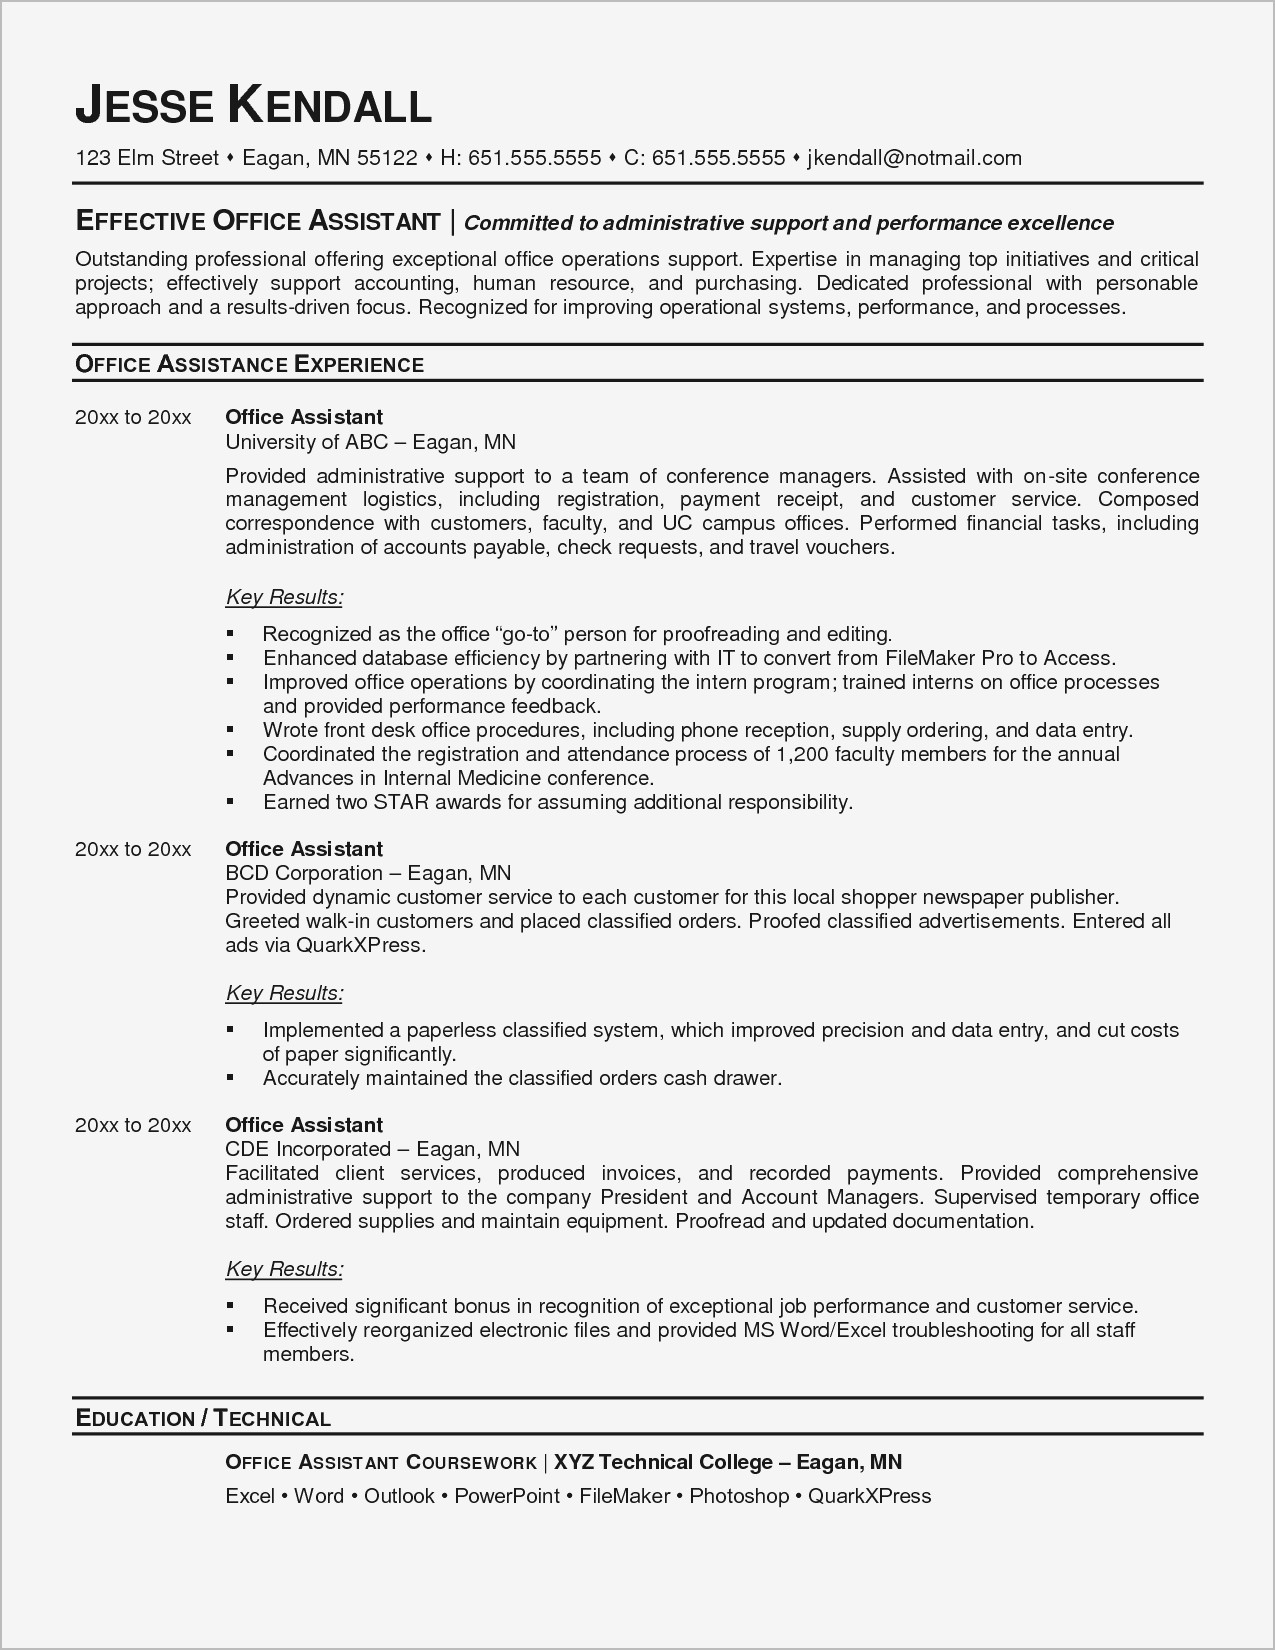 Administrative assistant Resume Template Microsoft Word - Executive assistant Resumes Unique Resume Template Executive